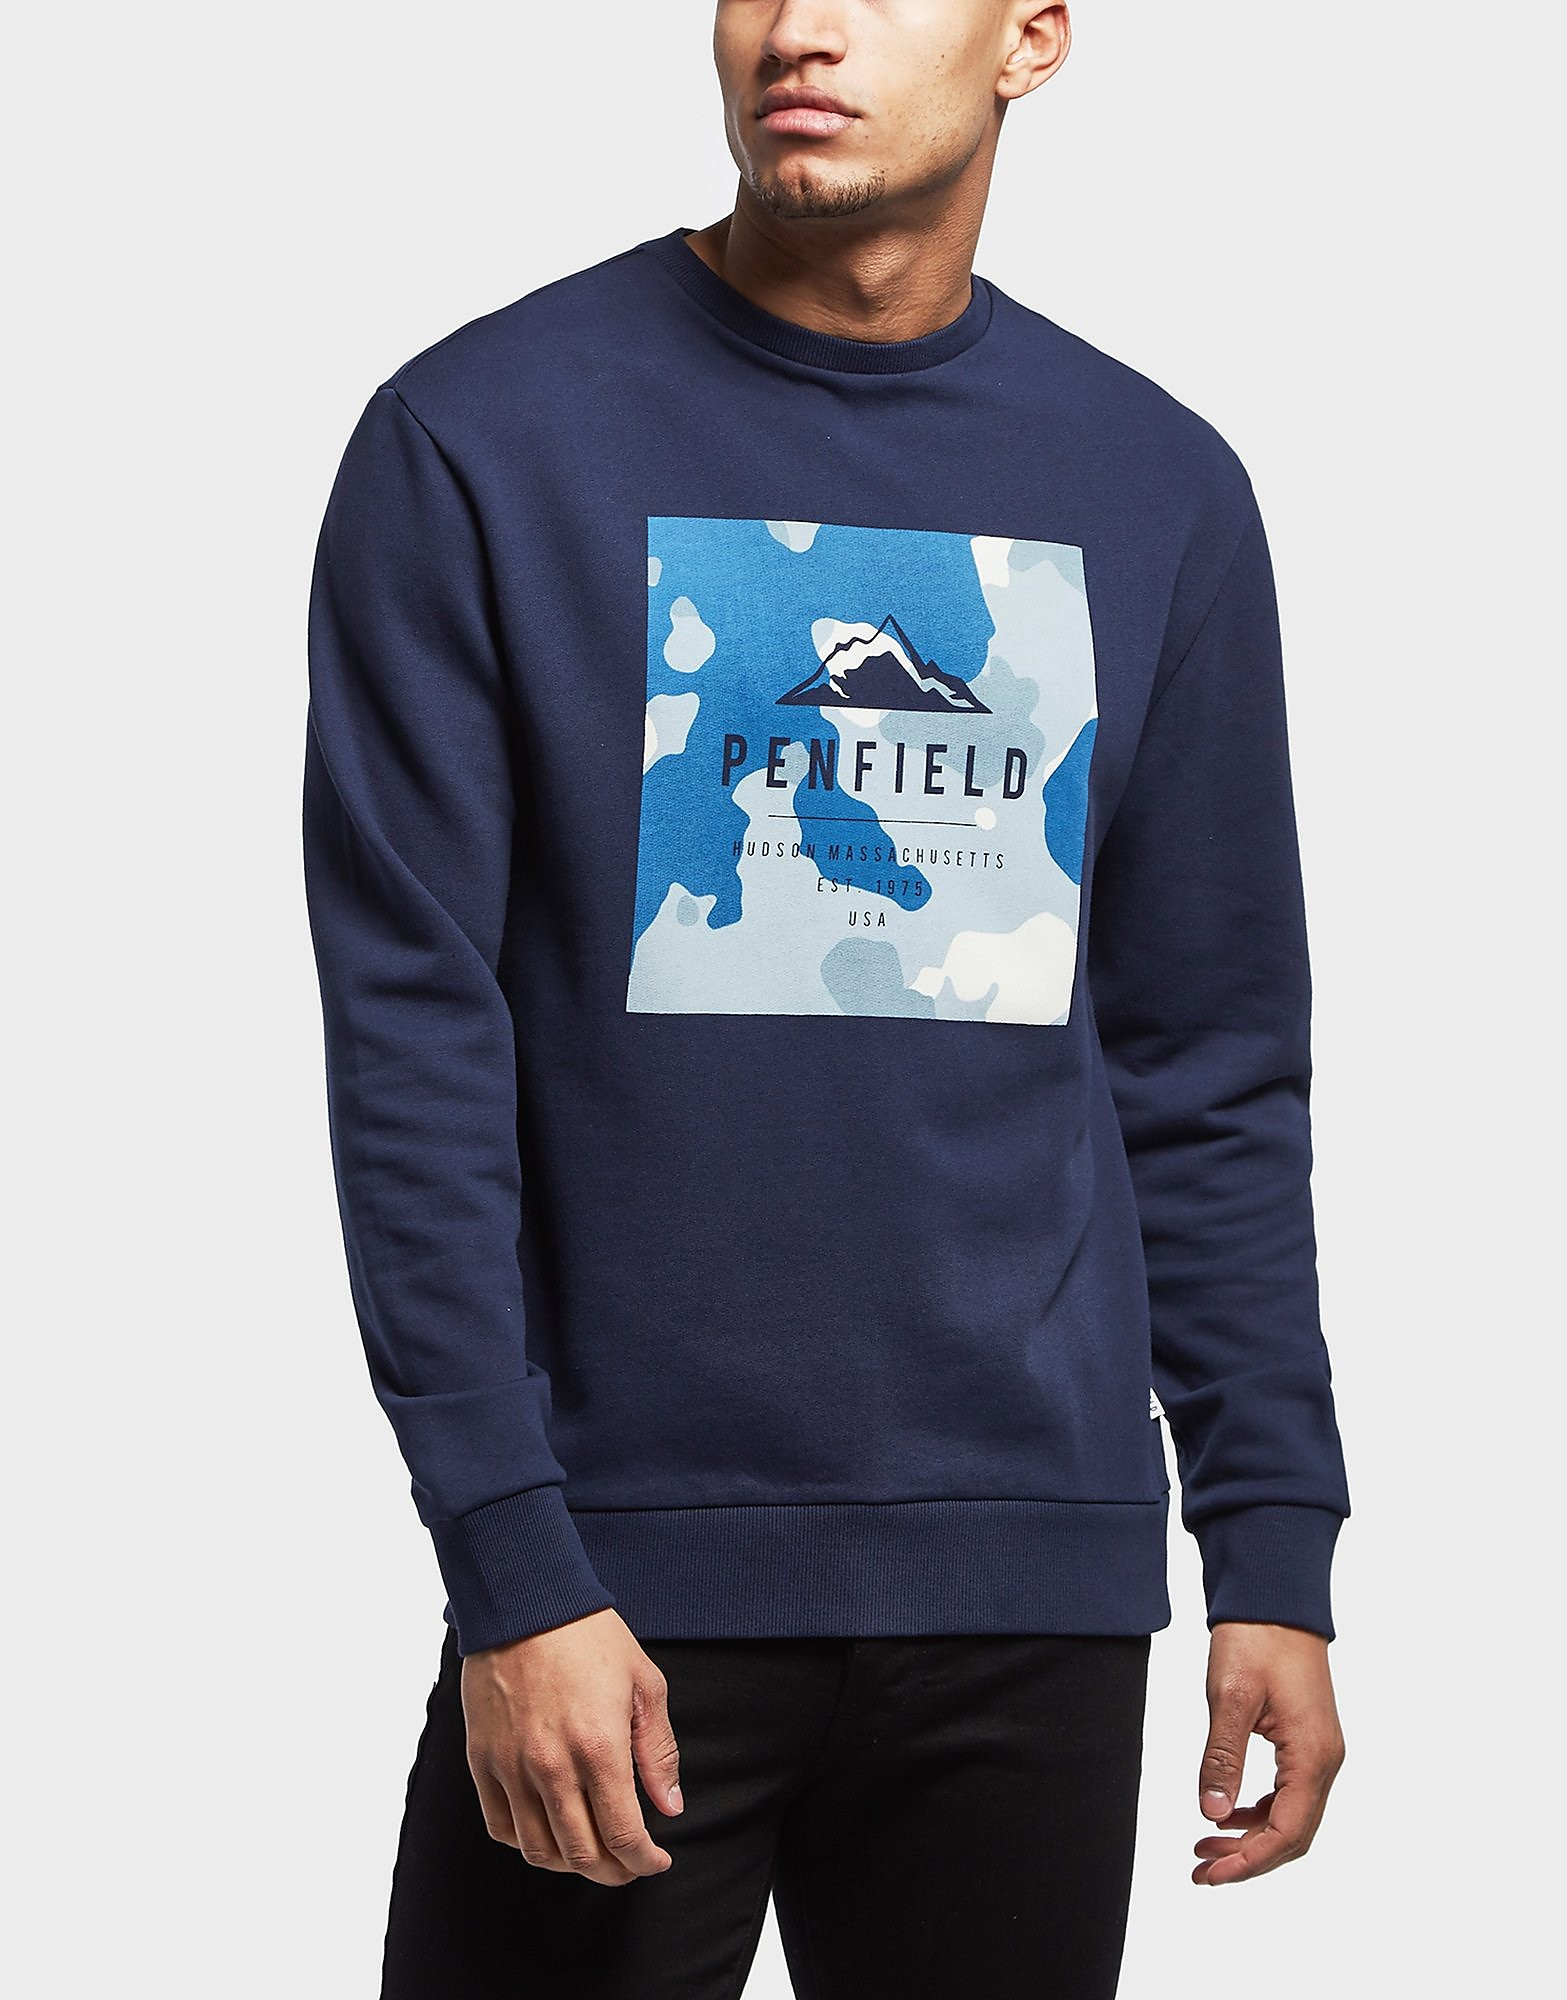 Penfield Cullen Square Sweatshirt